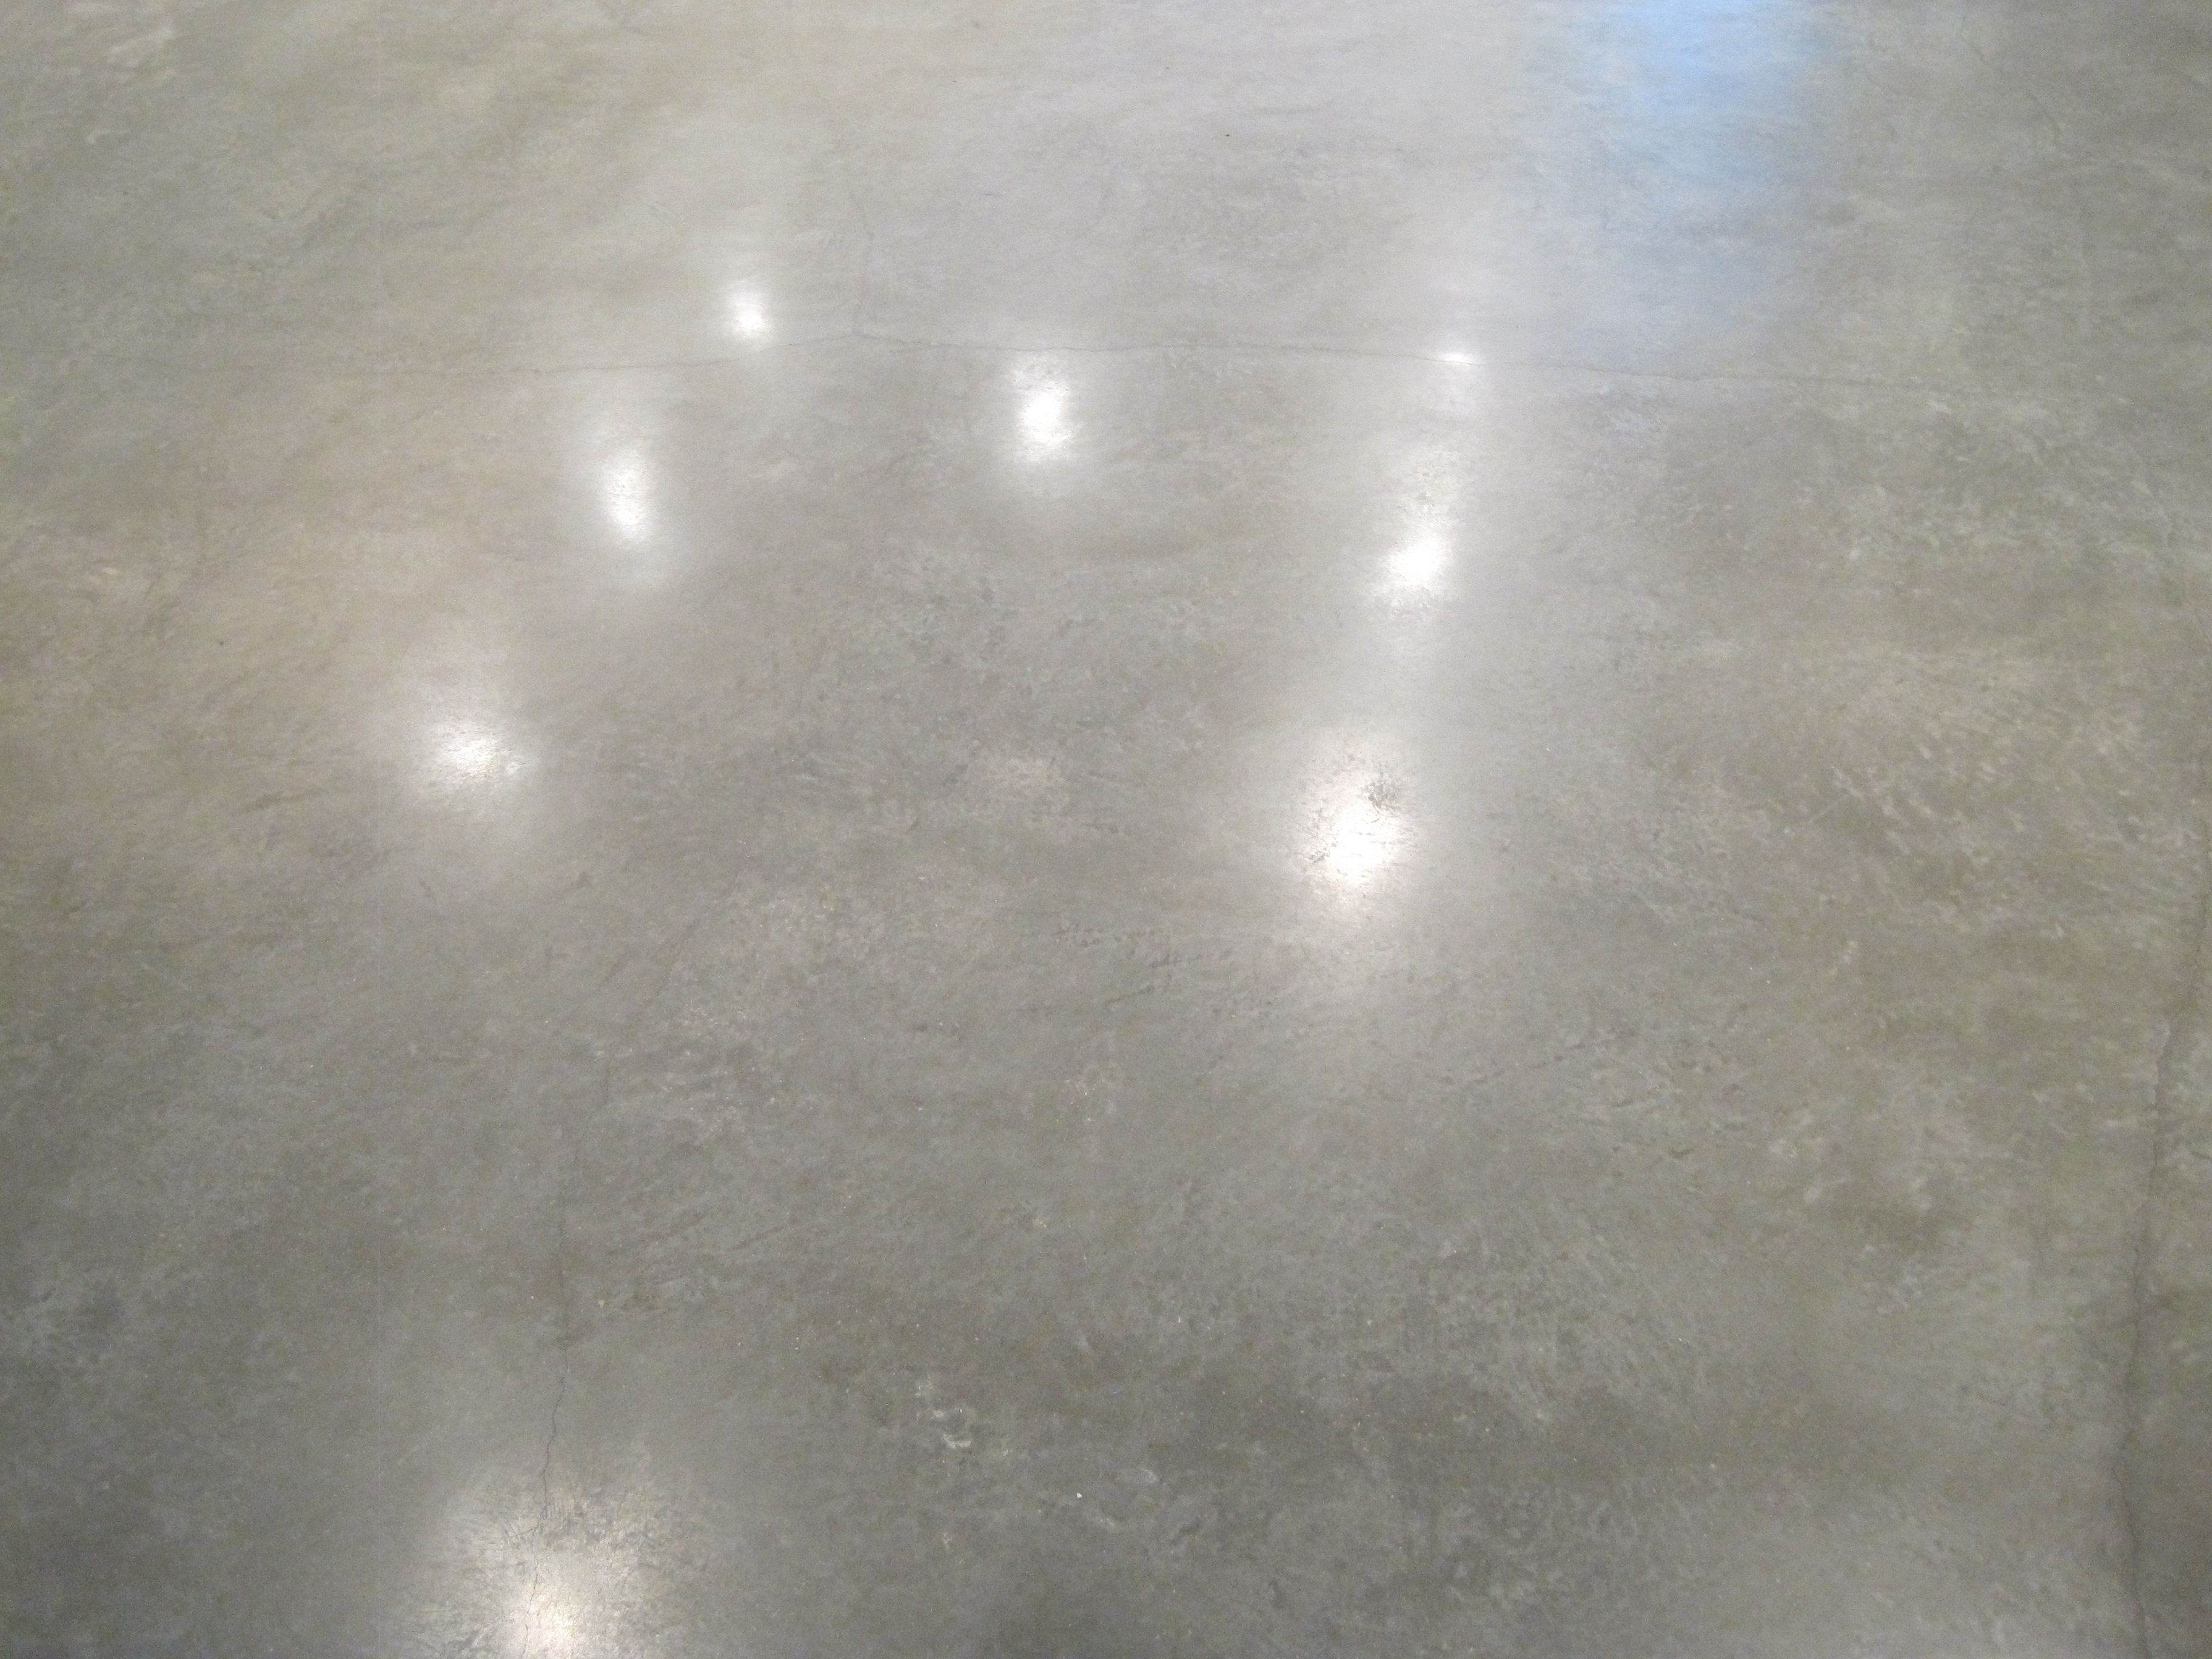 polished concrete floor texture. Delighful Concrete Concrete Polishing Is The Ultimate Alternative To Traditional Wax  Which Builds Up And Leaves A Residue We Can Polish New Or Old Concrete Floor  And Polished Floor Texture P